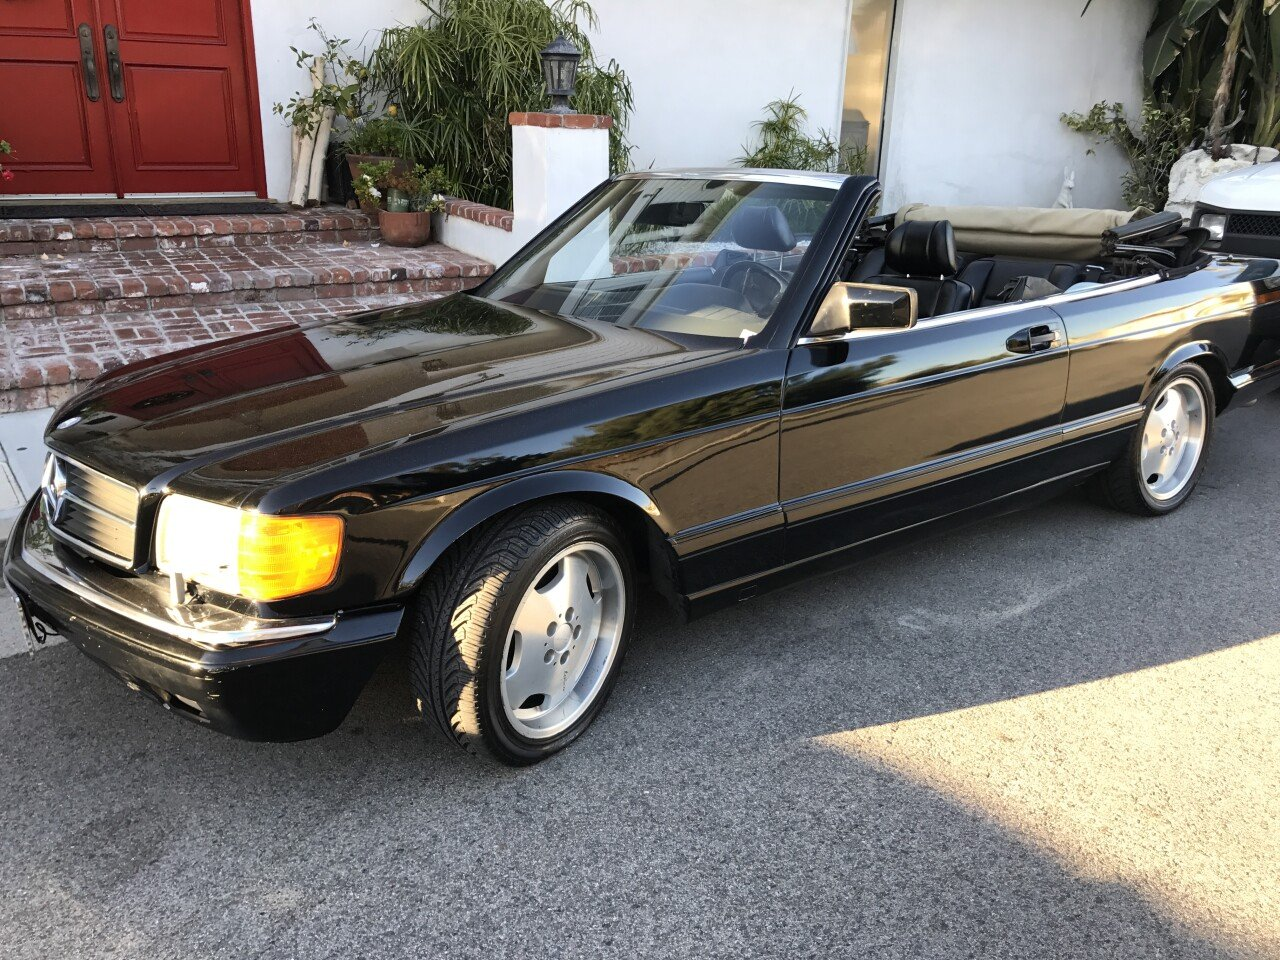 Classic Cars For Sale California Usa: 1987 Mercedes-Benz 560SEC For Sale Near Playa Del Rey